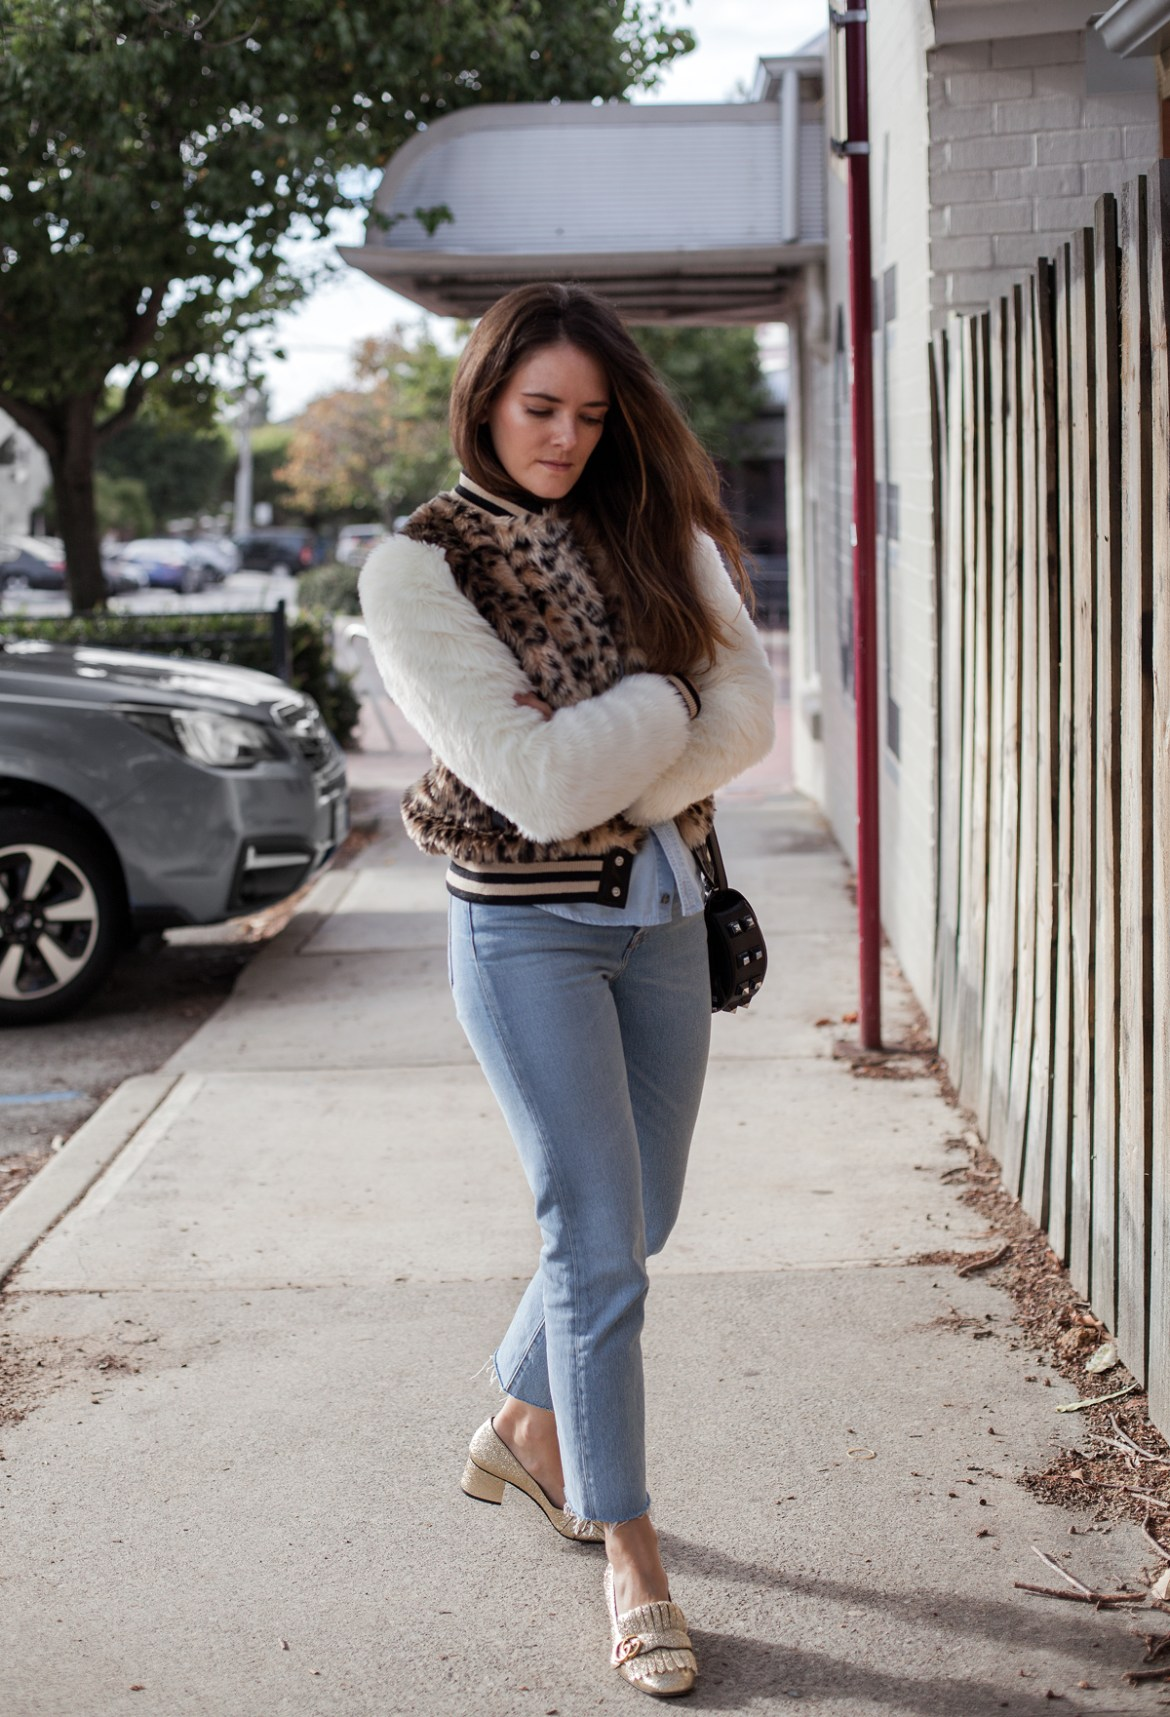 Mother The Baseball Snap Jacket faux fur leopard print with Levi's jeans and Gucci Marmont Shoes in gold worn by Inspiring Wit blogger Jenelle Witty